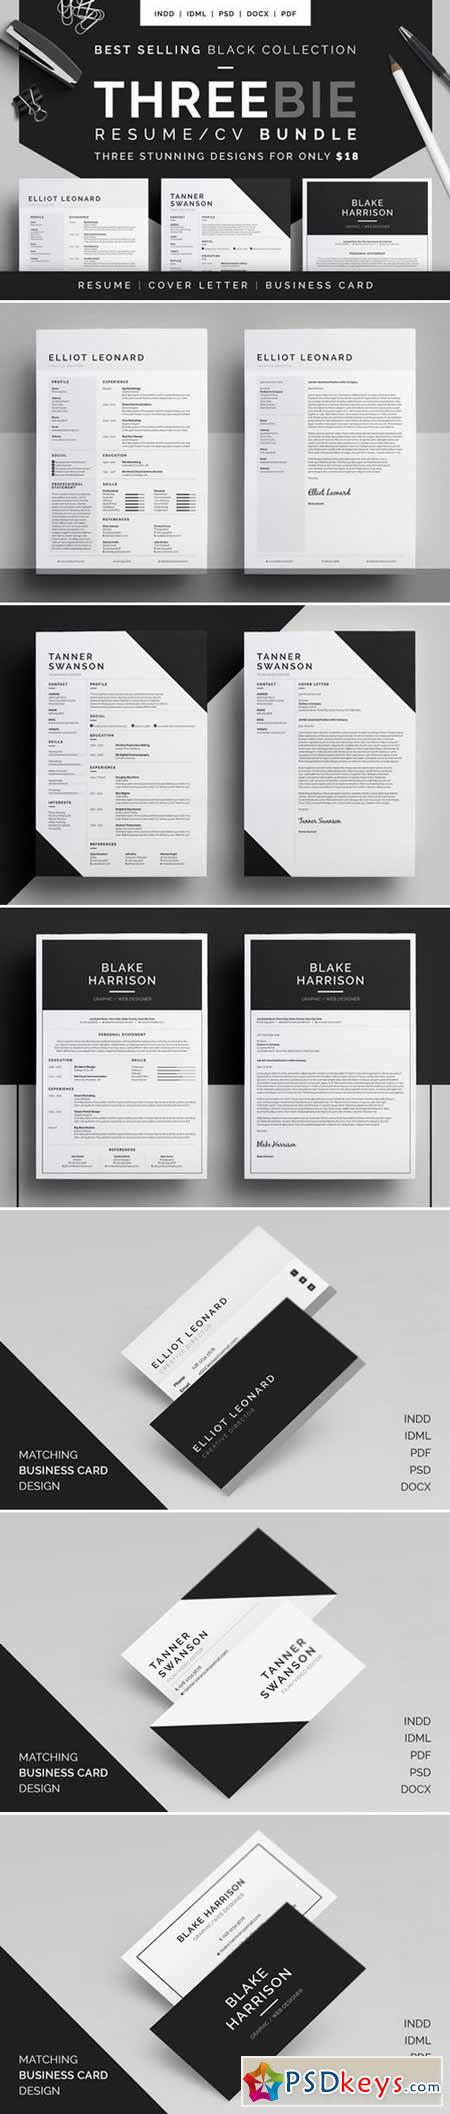 Resume CV - Threebie Bundle 2 433184